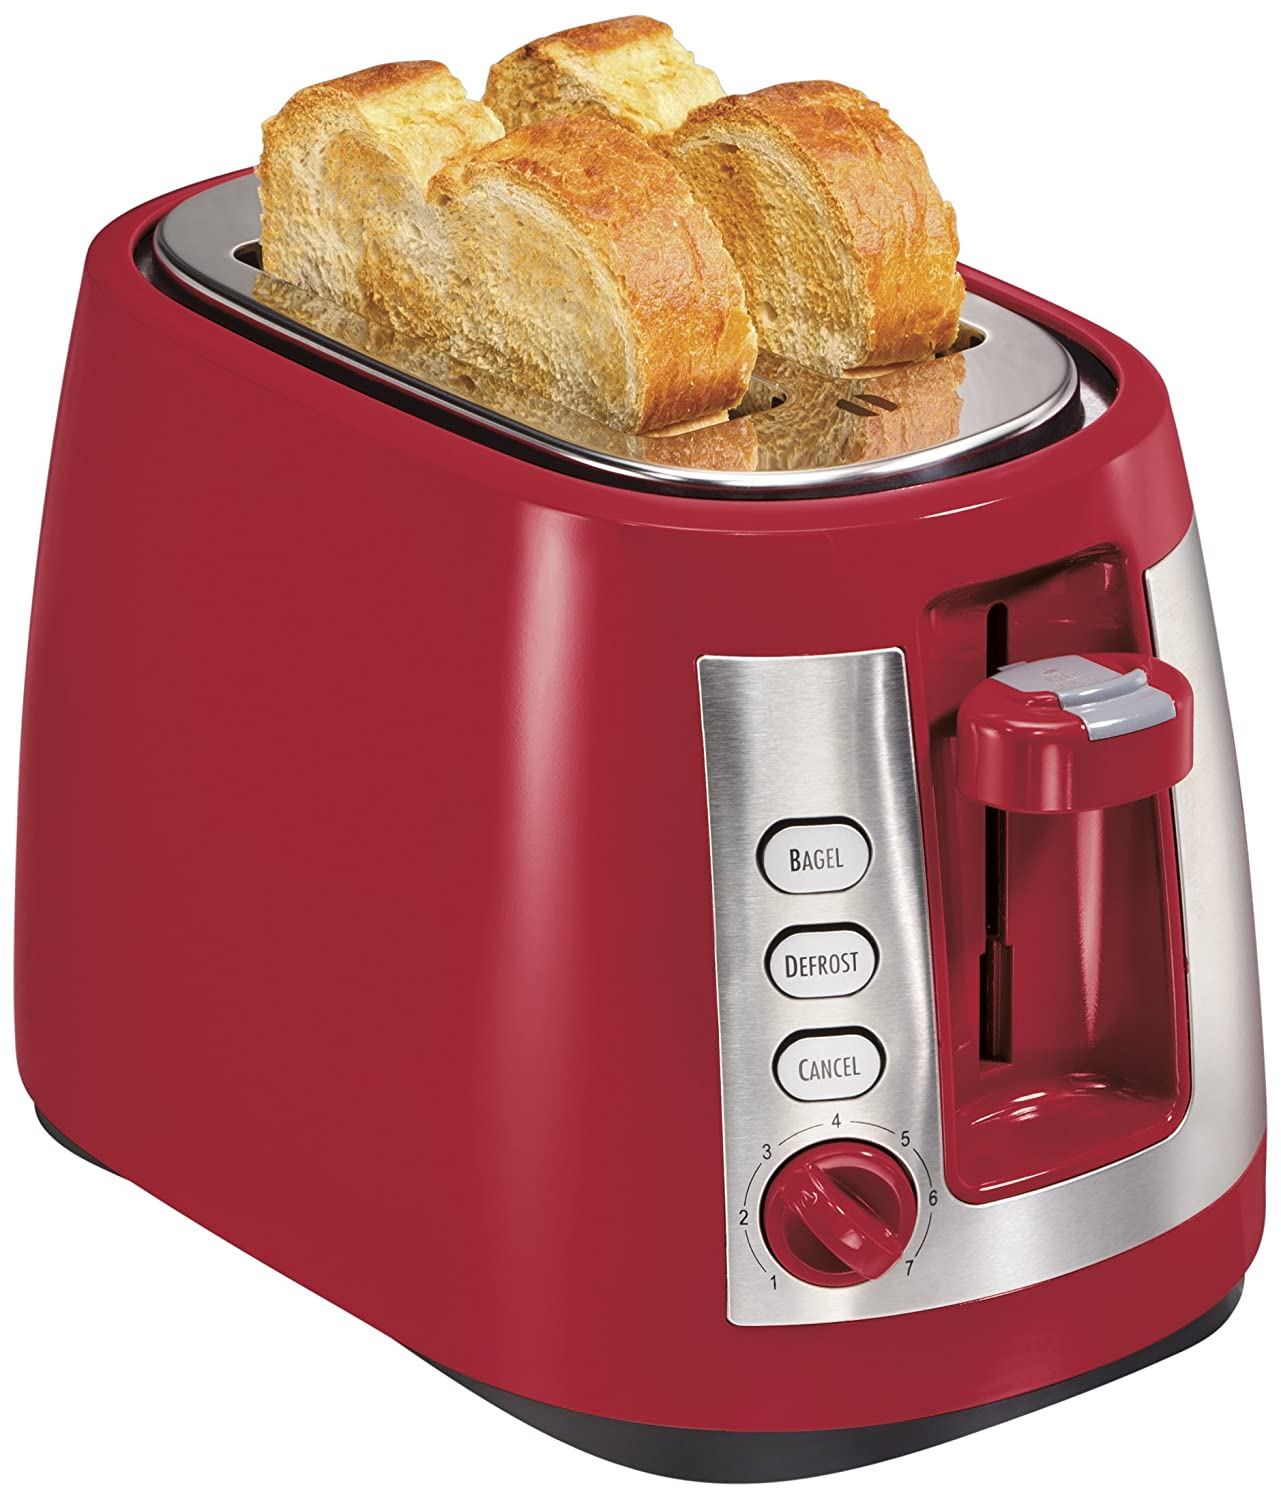 Hamilton Beach Ensemble Extra-Wide Slot 2-Slice Toaster, Red